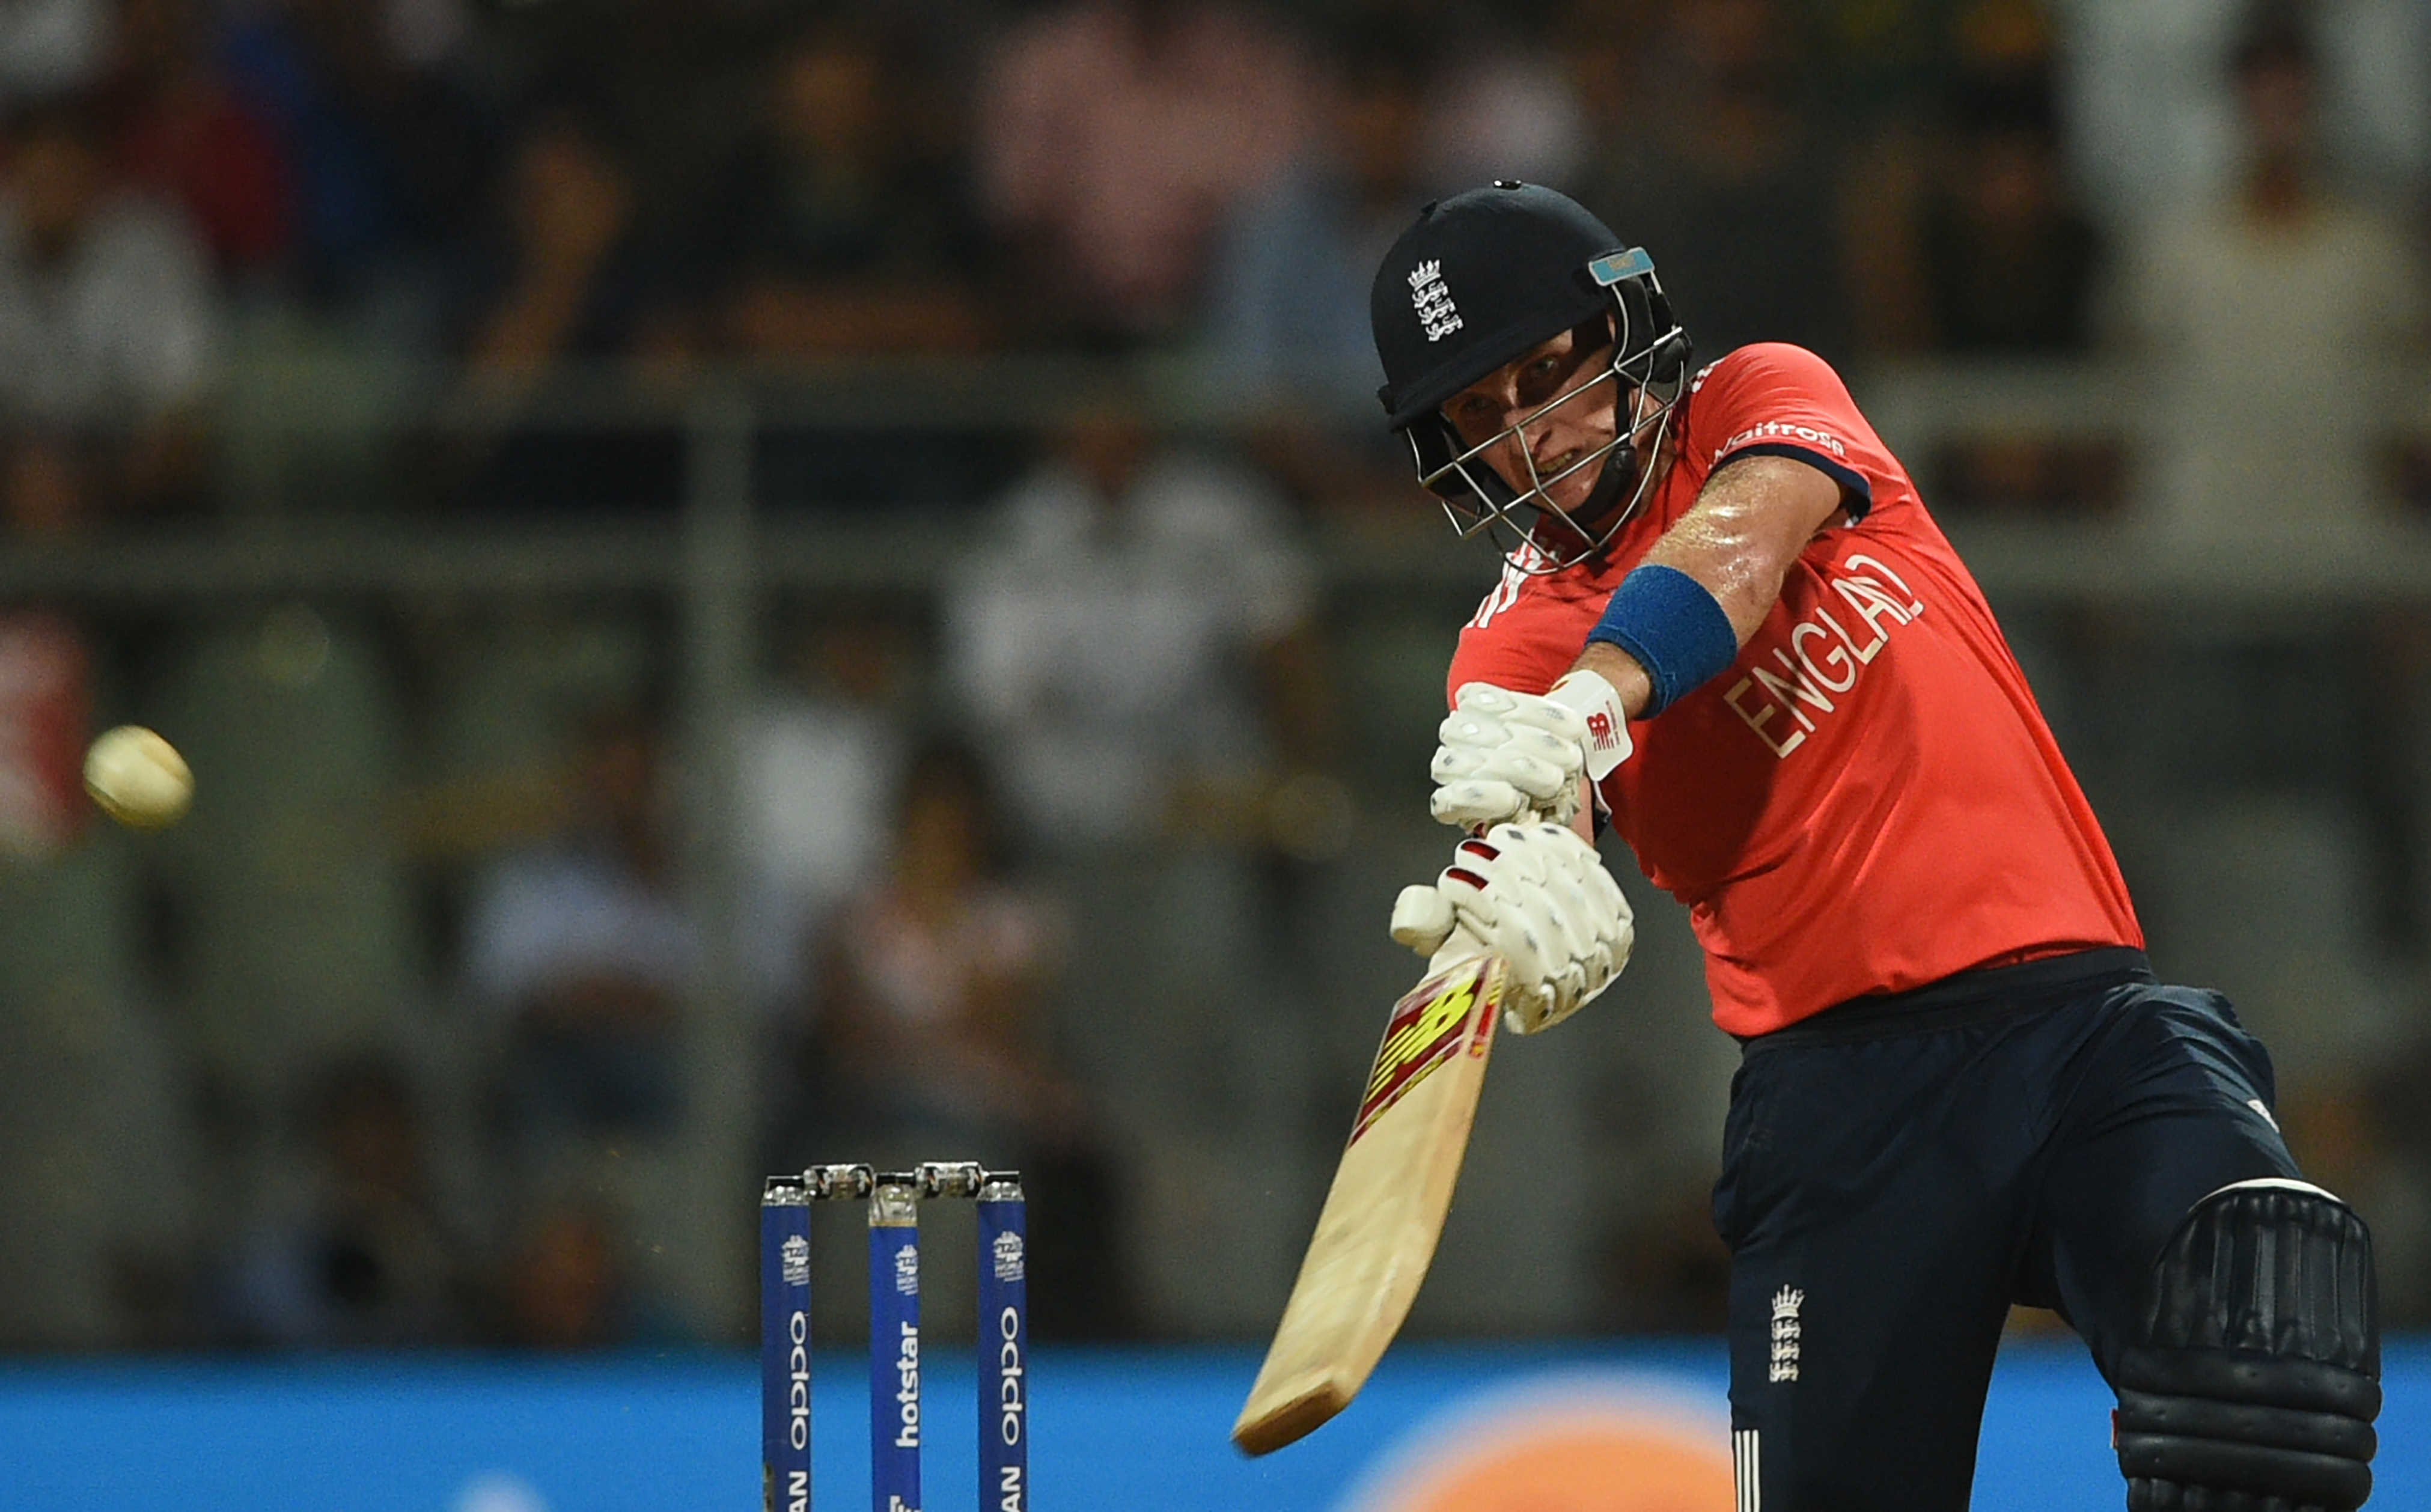 England cricket live stream, Afghanistan cricket live stream, Afghanistan England live stream, how to watch Afghanistan England cricket, watch Afghanistan England mobile stream,cricket streaming, live, online, mobile, app, tablet, England Afghanistan, t20 world cup, cricinfo, willow cricket, t20 stream, England vs. Afghanistan Live Stream